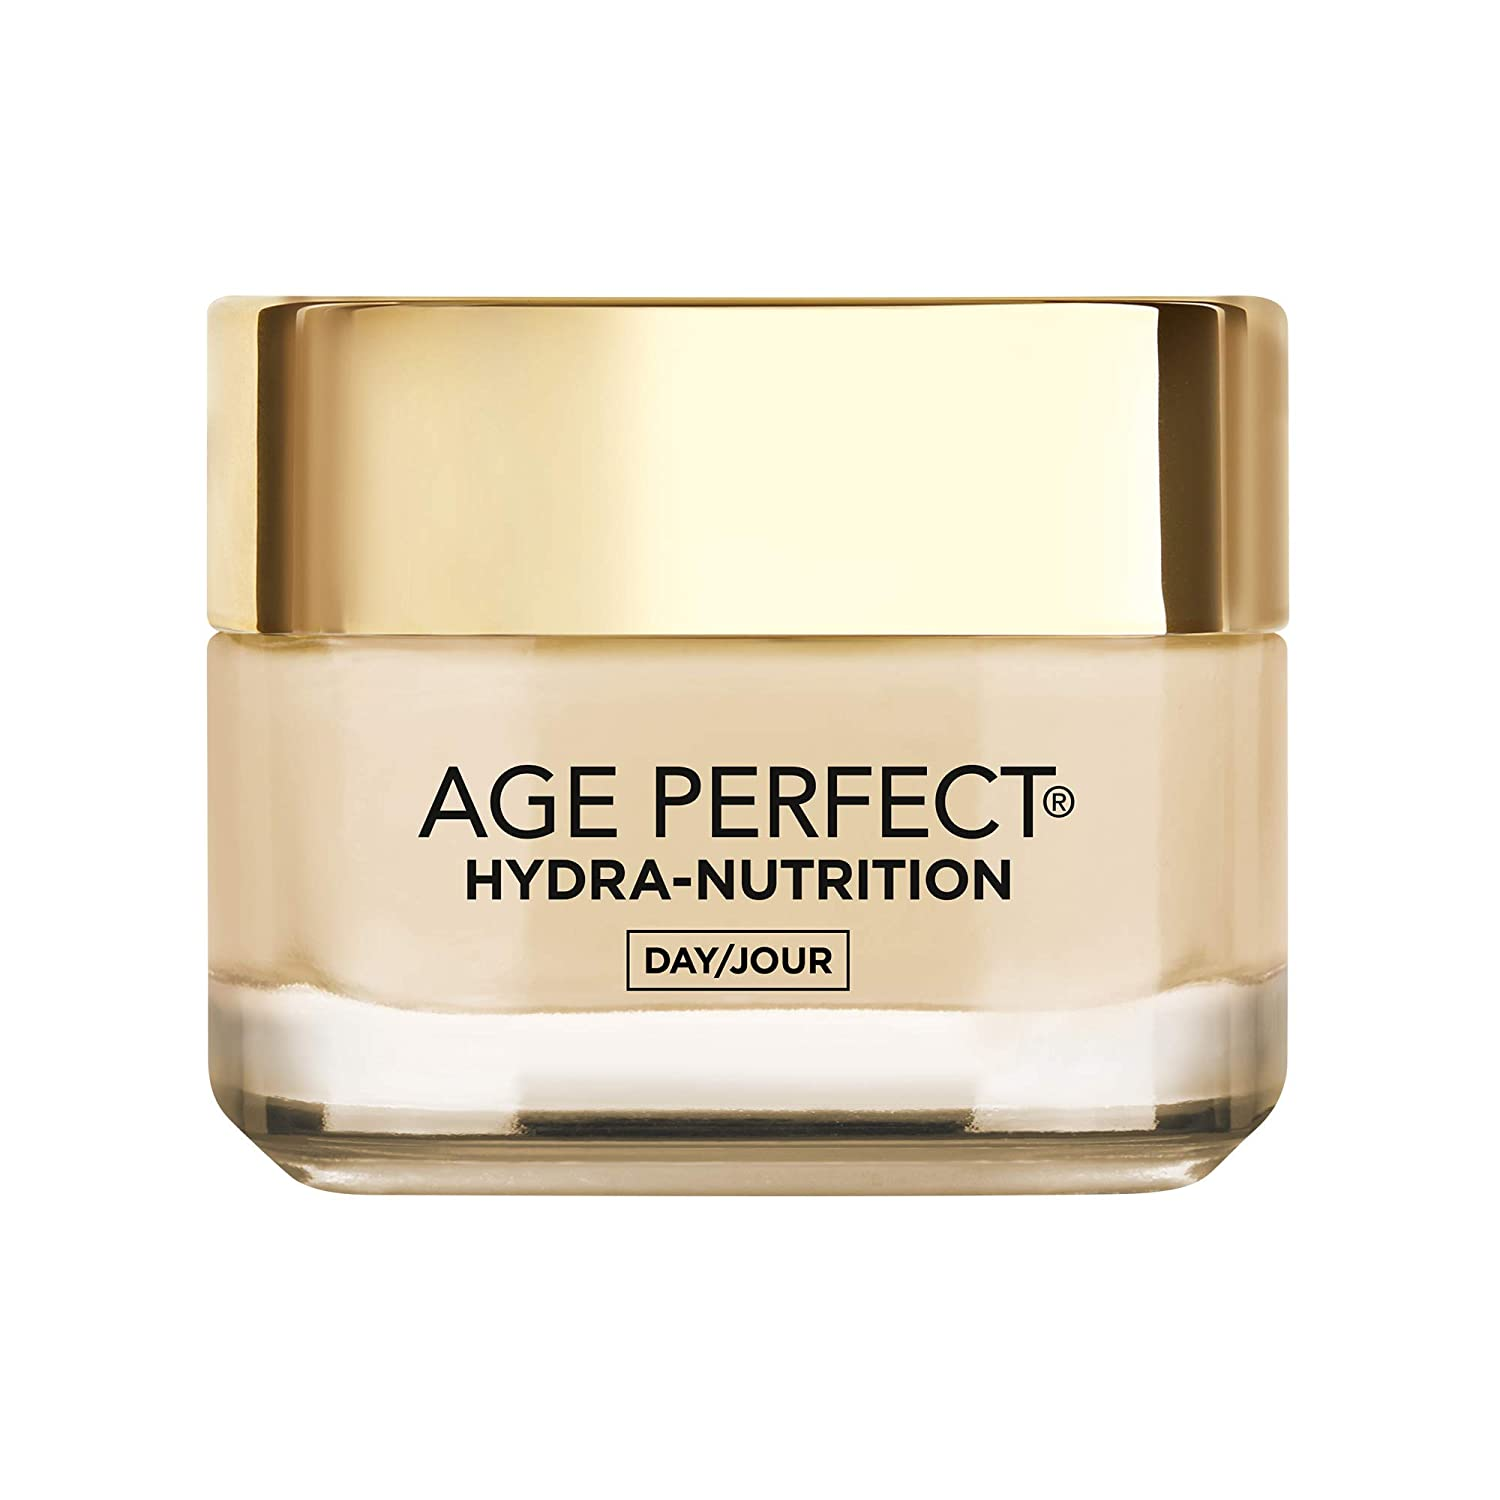 L'Oreal Paris Age Perfect Hydra-Nutrition Day Face Cream Moisturizer, with Calcium + Precious Oils, Very Dry Skin, Anti-Aging, 50 ML L'Oreal Paris L'O-8448